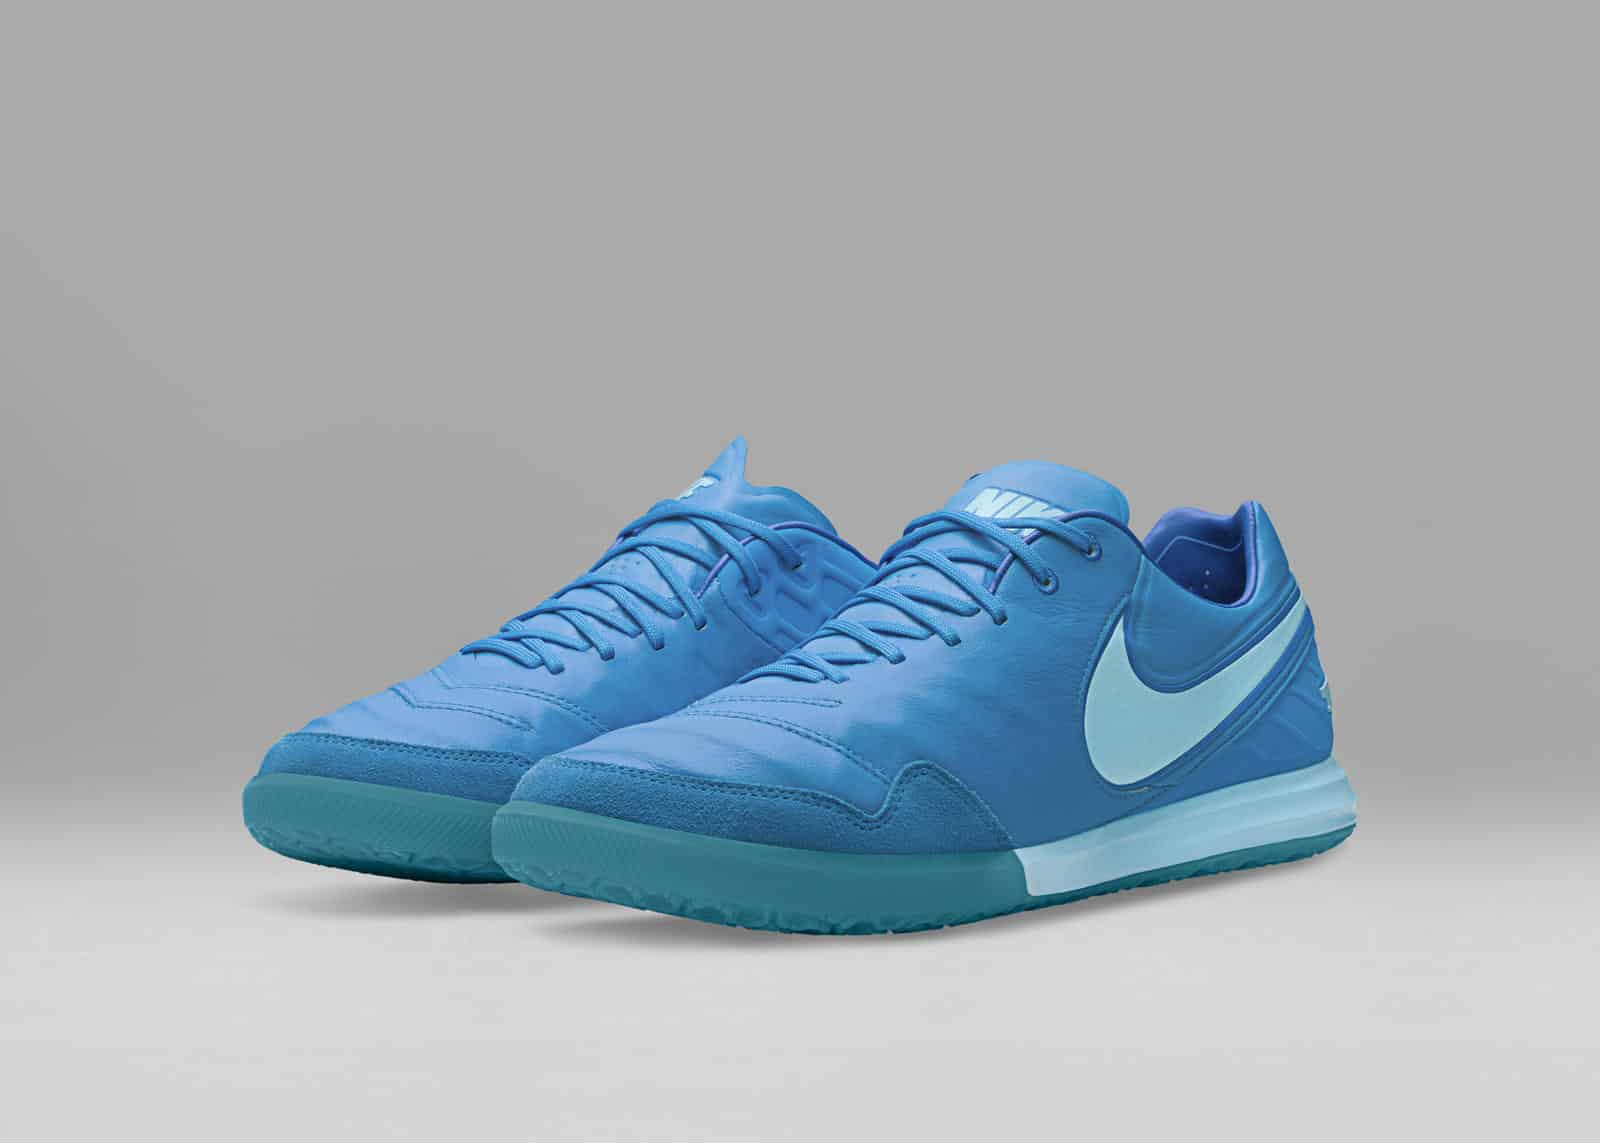 chaussure-foot-nike-tiempox-proximo-pack-floodlight-glow-fluorescent-2016